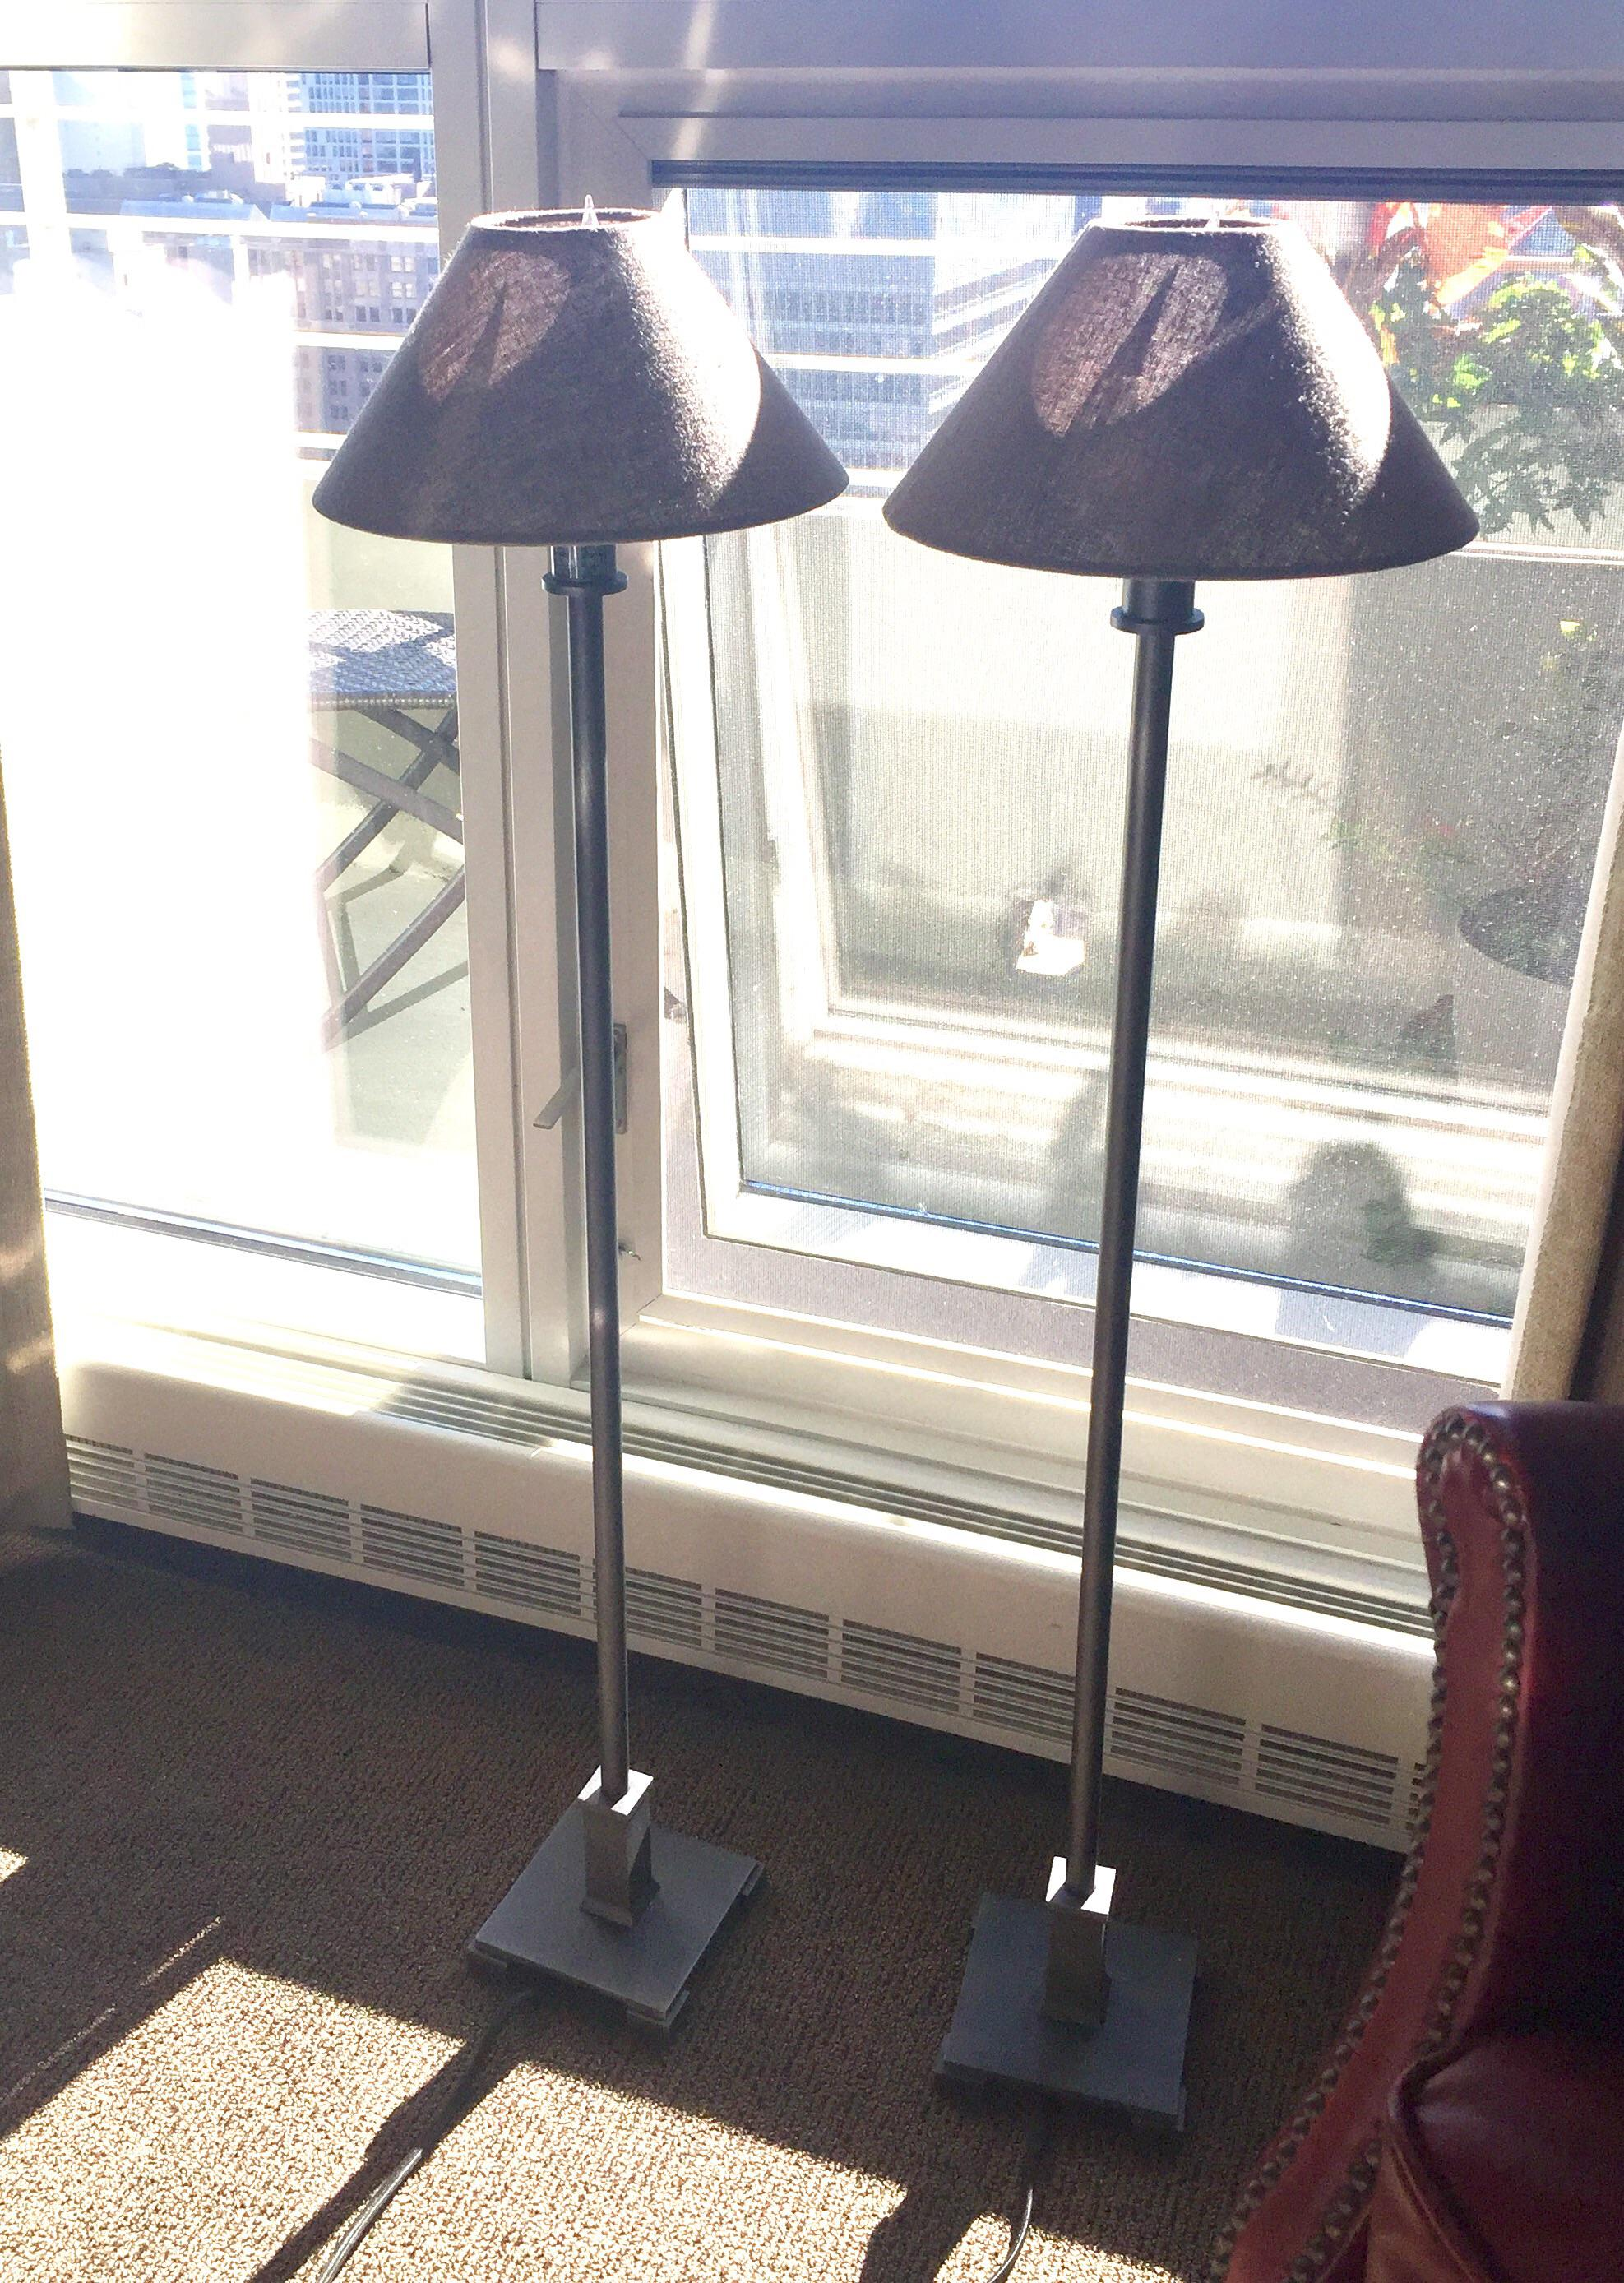 Restoration Hardware Petite Candlestick Buffet Lamps   A Pair   Image 2 Of 5